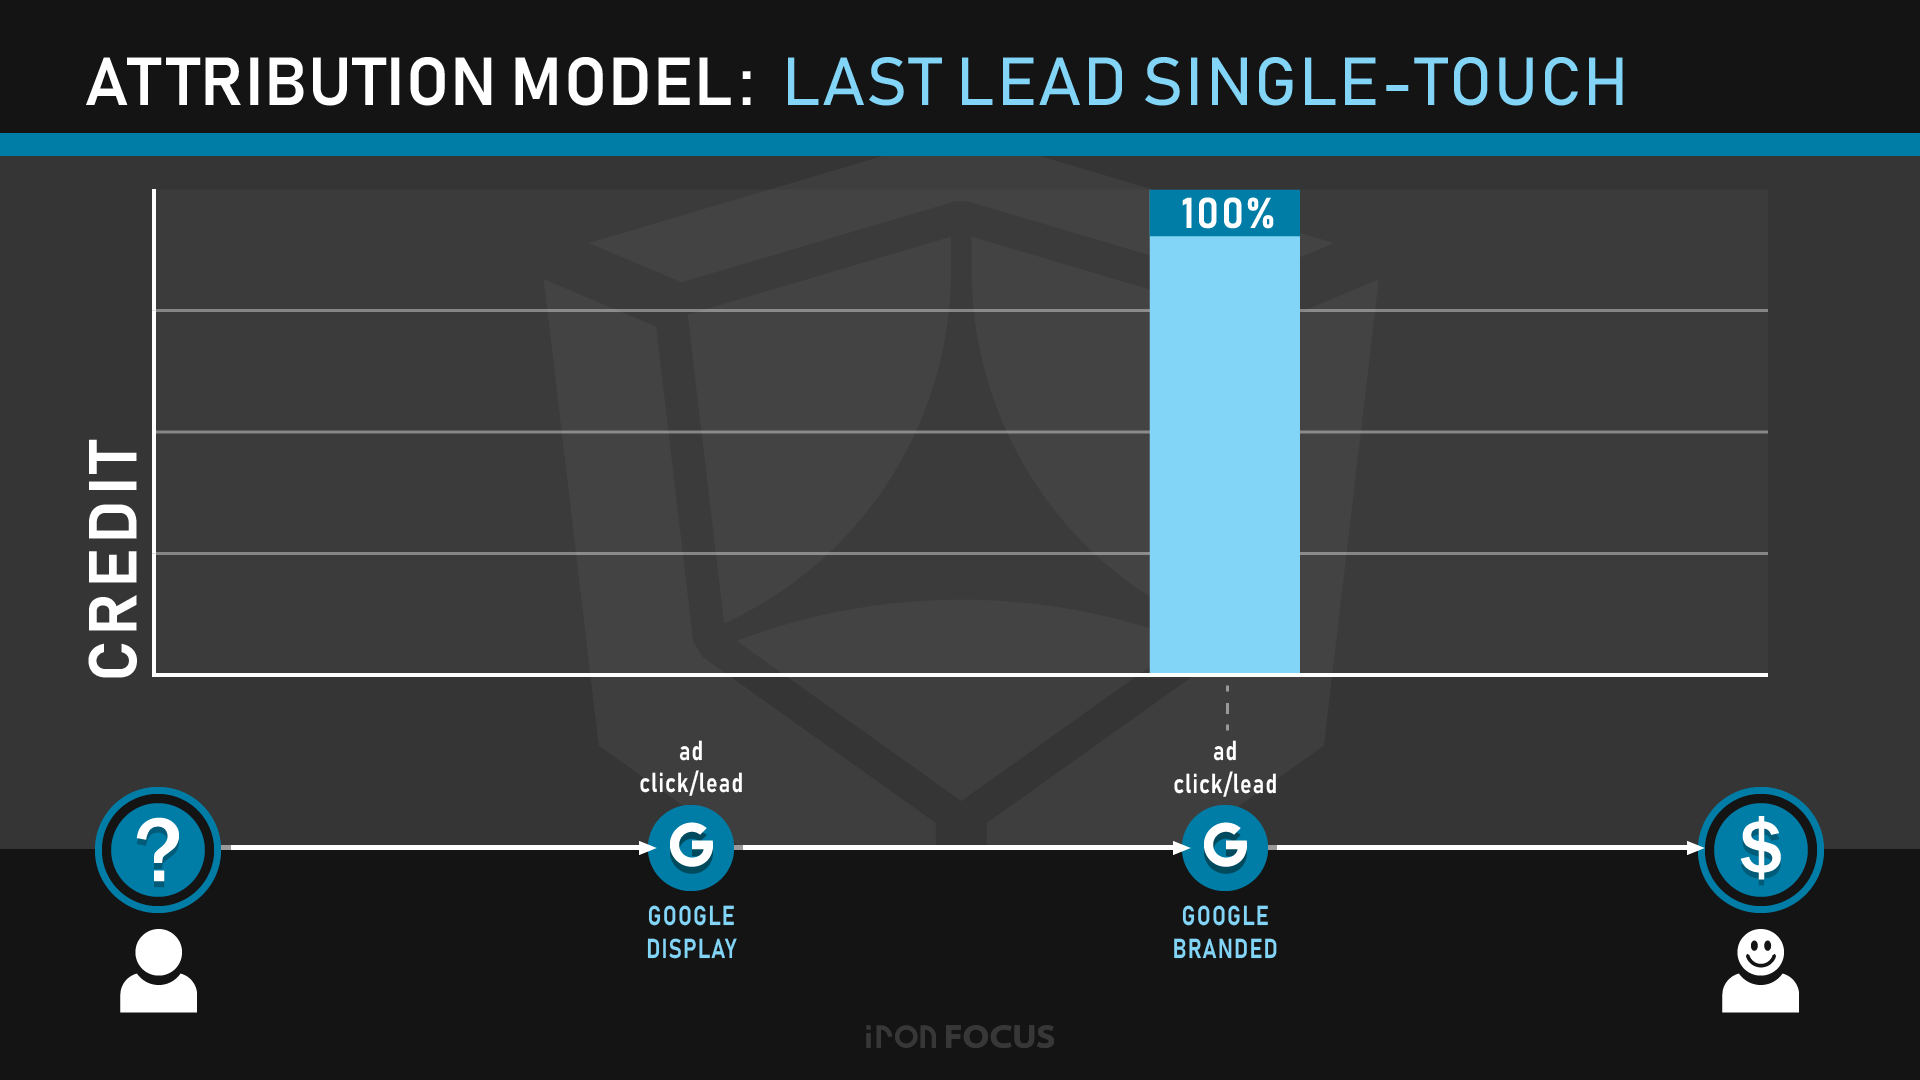 Attribution Model: Last Lead Single-Touch